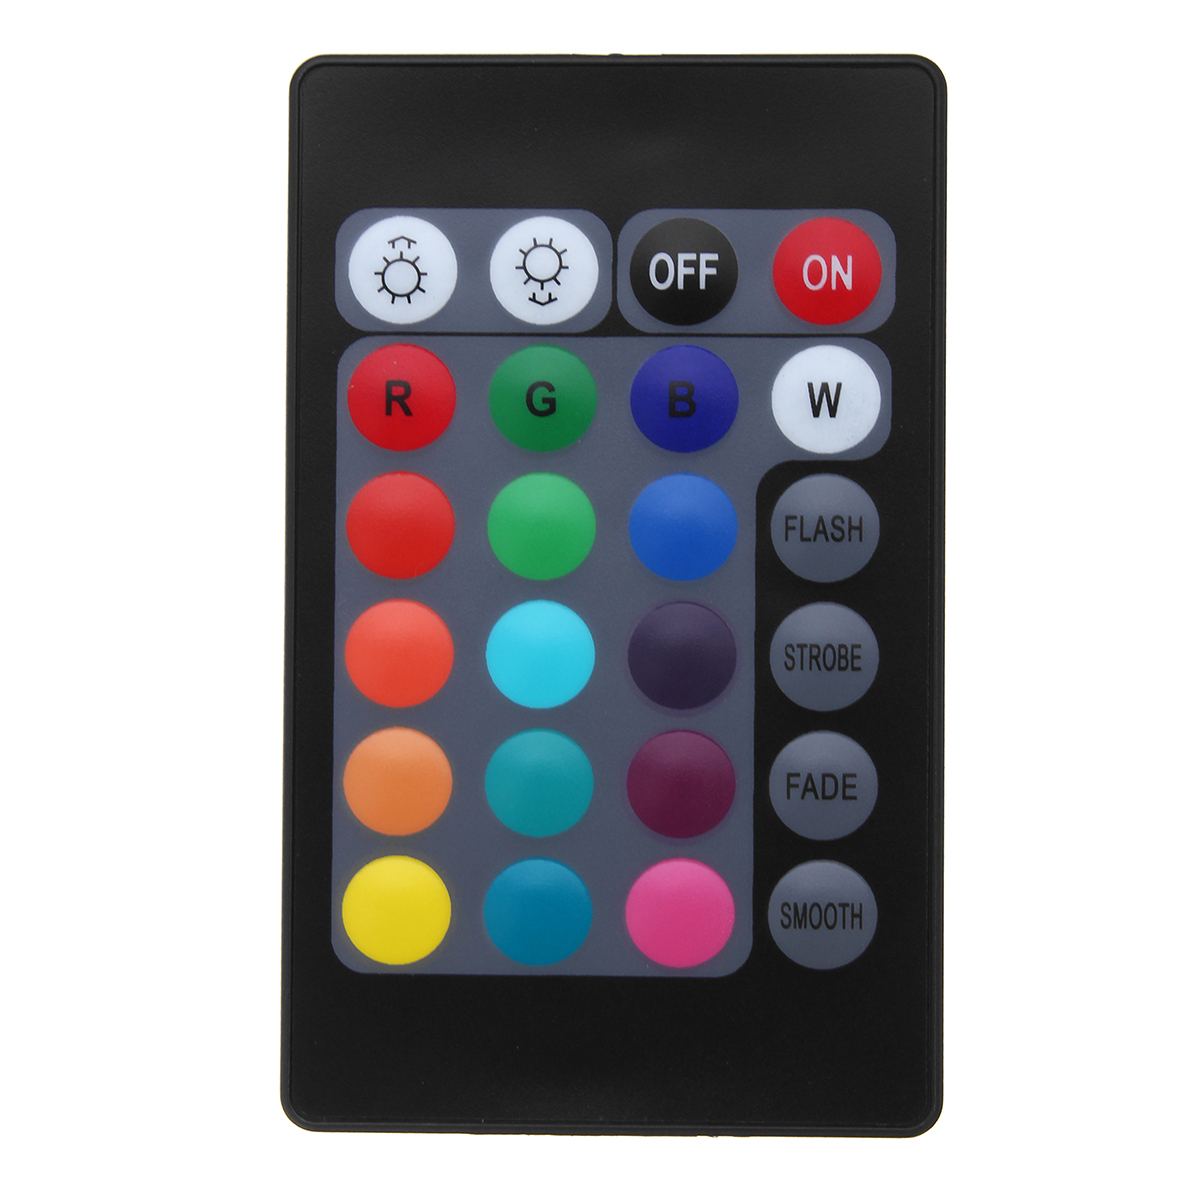 DC5-12V 72W Mini Smart WiFi Remote Controller Work With Alexa Google Home For RG